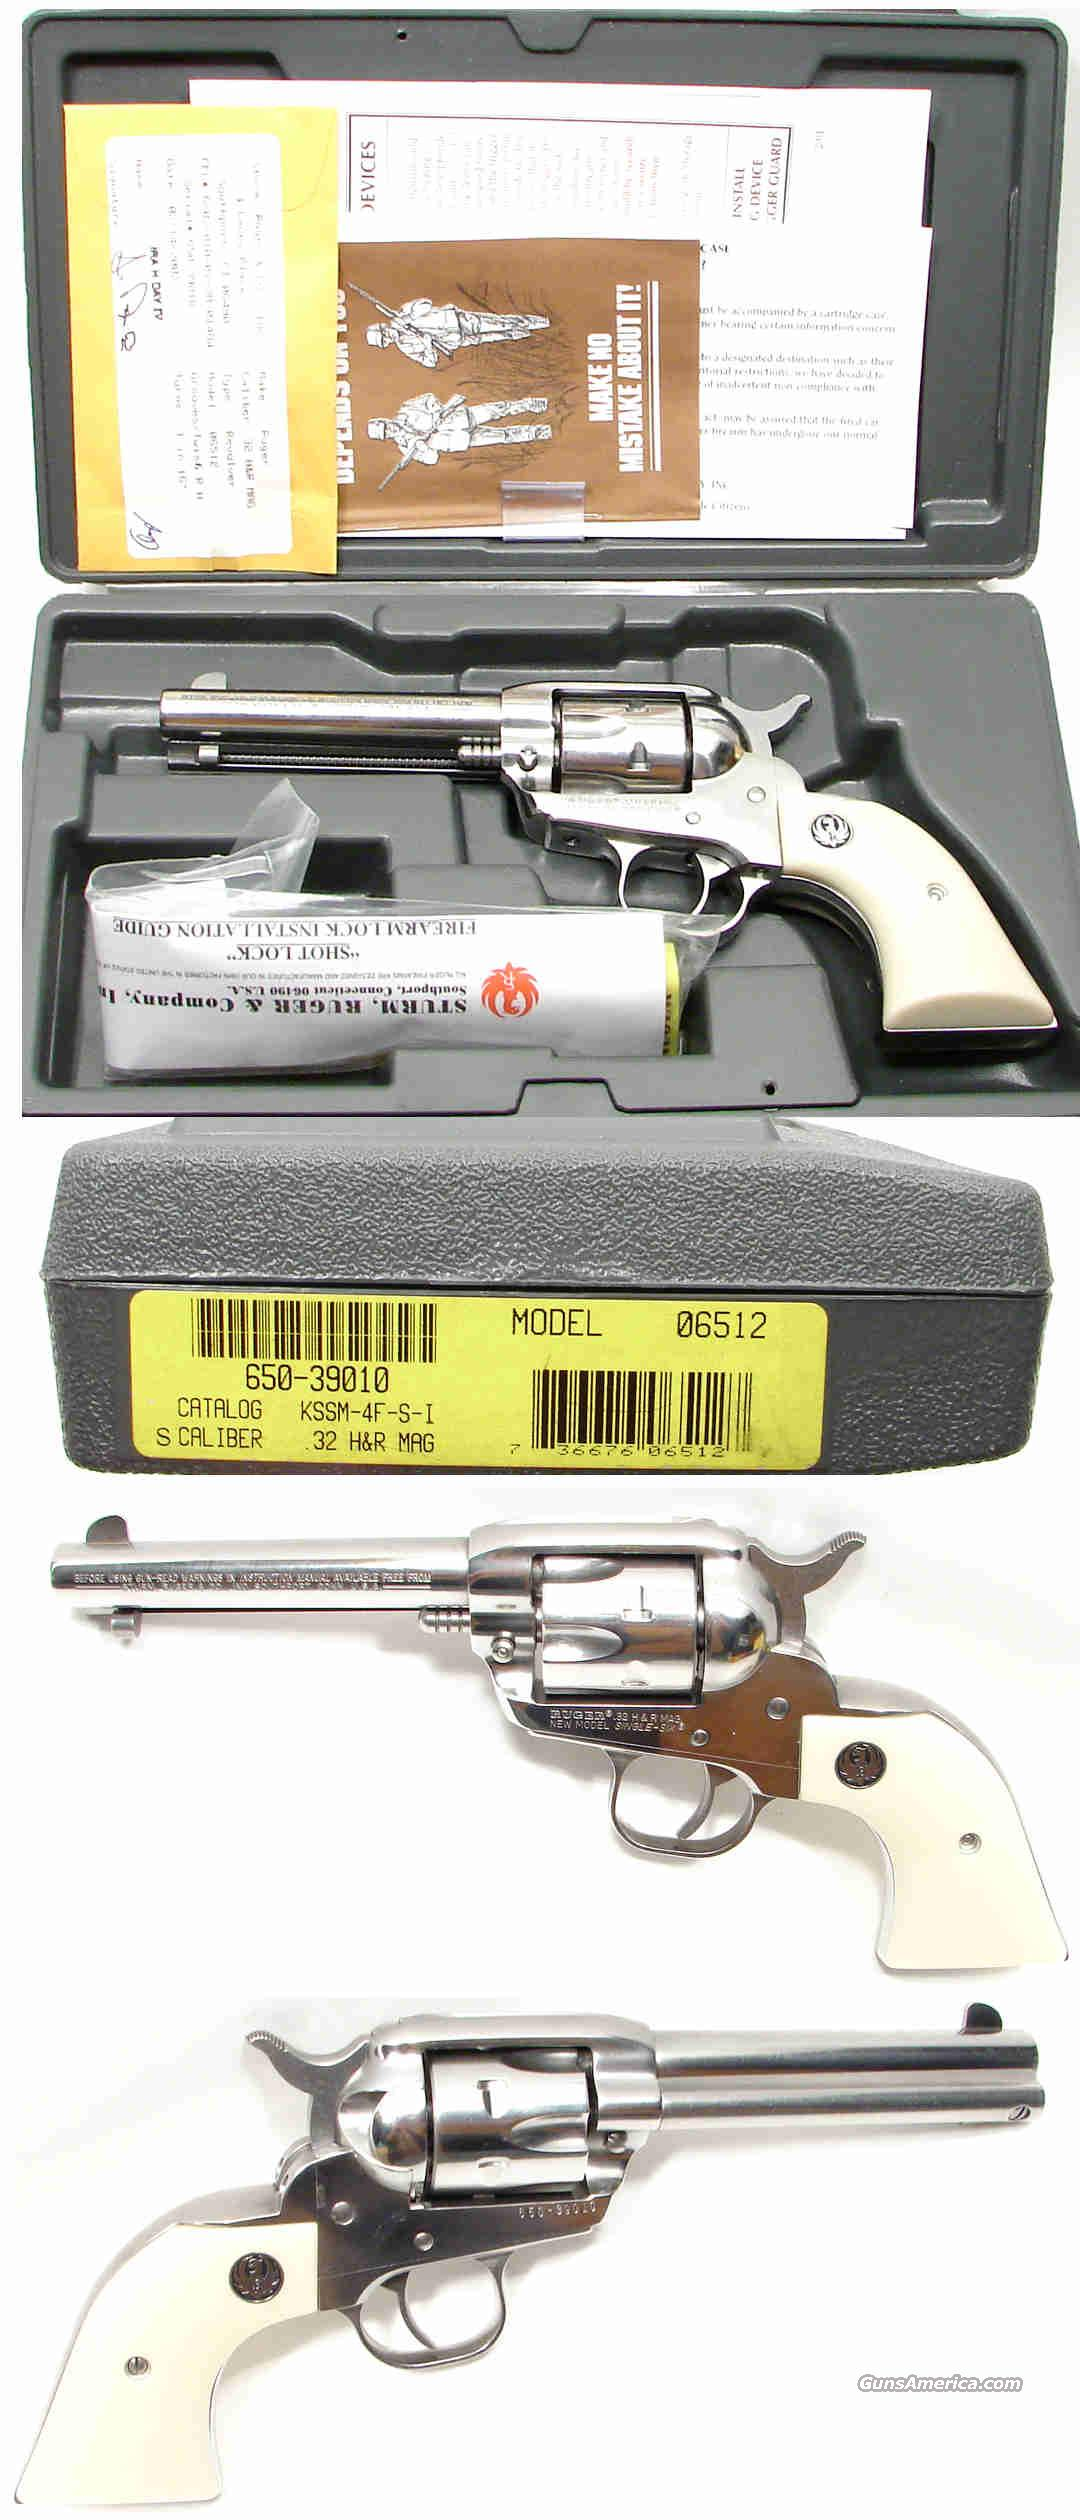 Ruger Single Six 32 H&R Magnum 32 H&R Magnum NIB  Guns > Pistols > Ruger Single Action Revolvers > Single Six Type